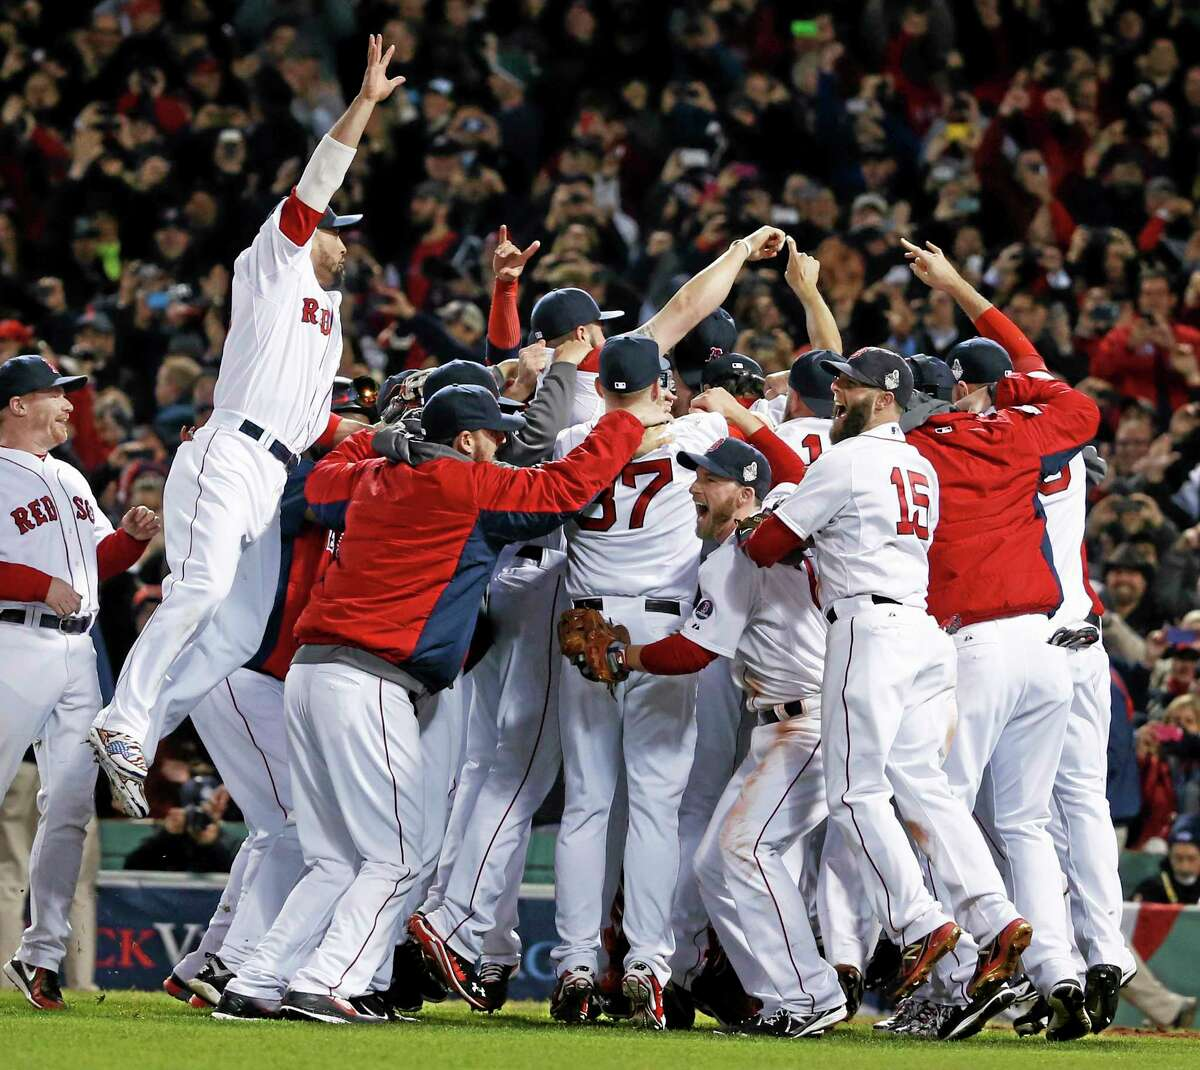 The Boston Red Sox celebrate after defeating the St. Louis Cardinals 6-1 in Game 6 of the World Series on Wednesday night at Fenway Park.